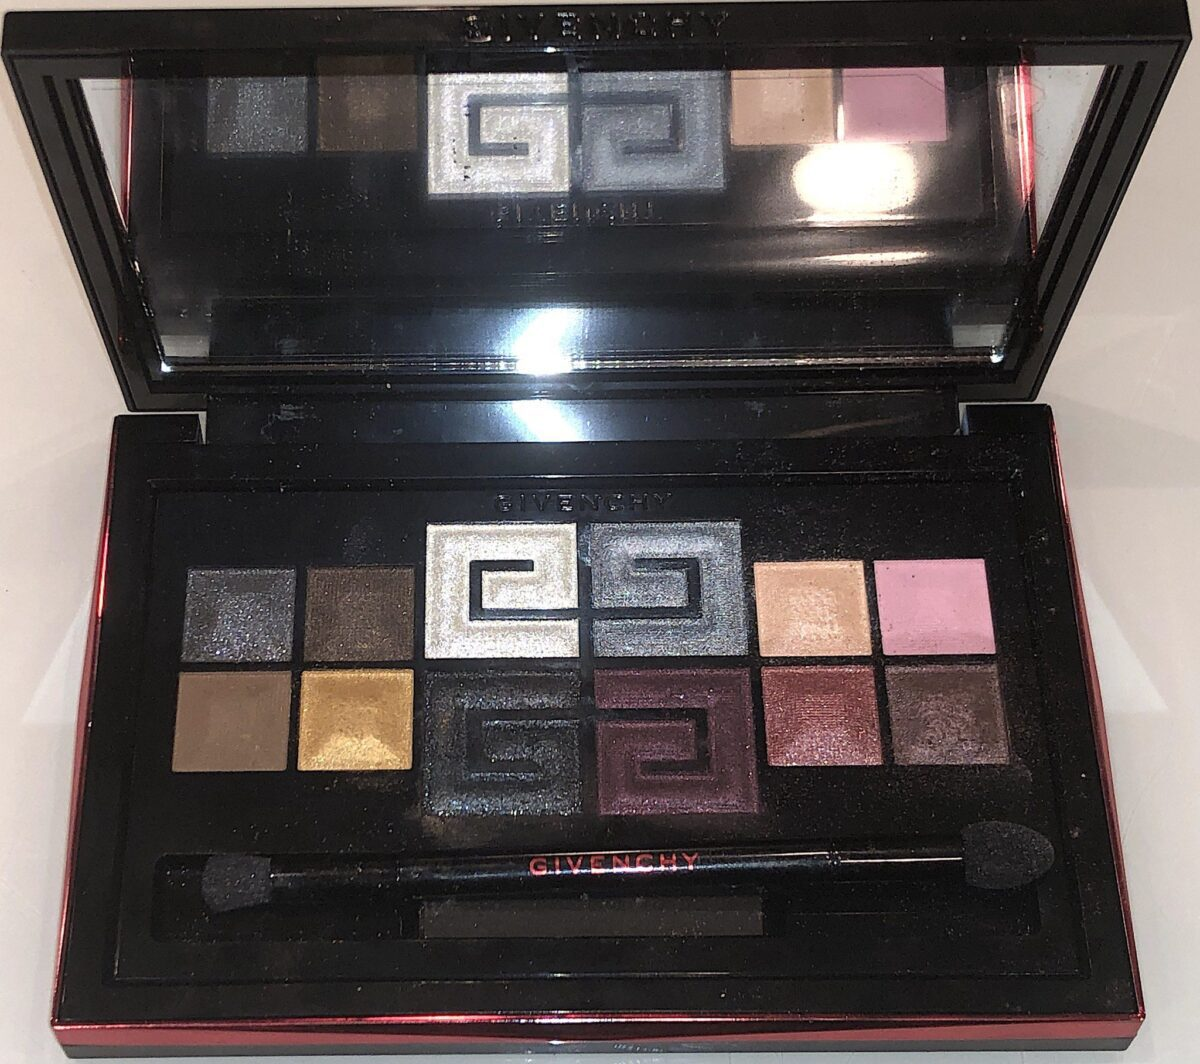 THE PALETTE HAS A LARGE MIRROR AND A DOUBLE ENDED EYESHADOW BRUSH